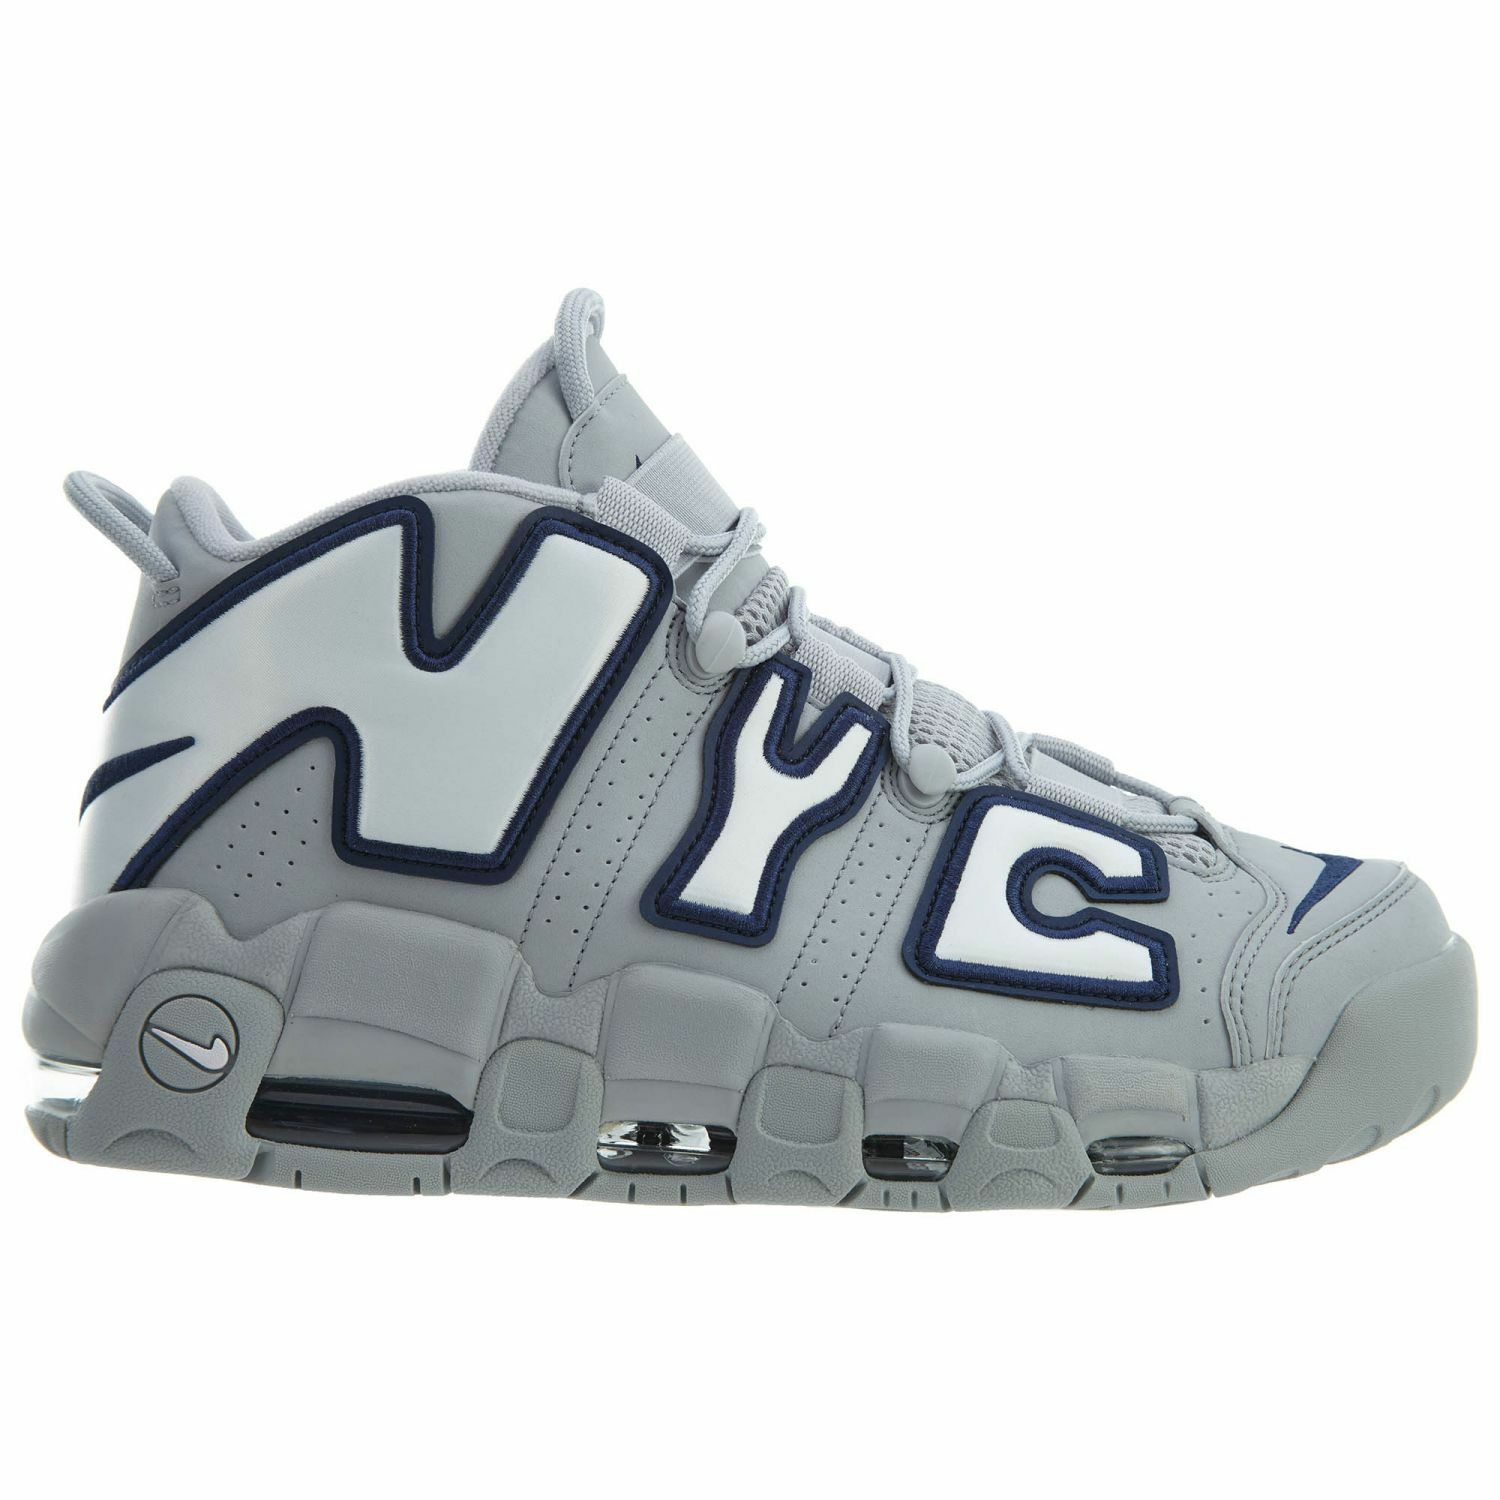 Nike Air More Uptempo NYC QS Mens AJ3137-001 Wolf Grey Navy Shoes Size 11.5